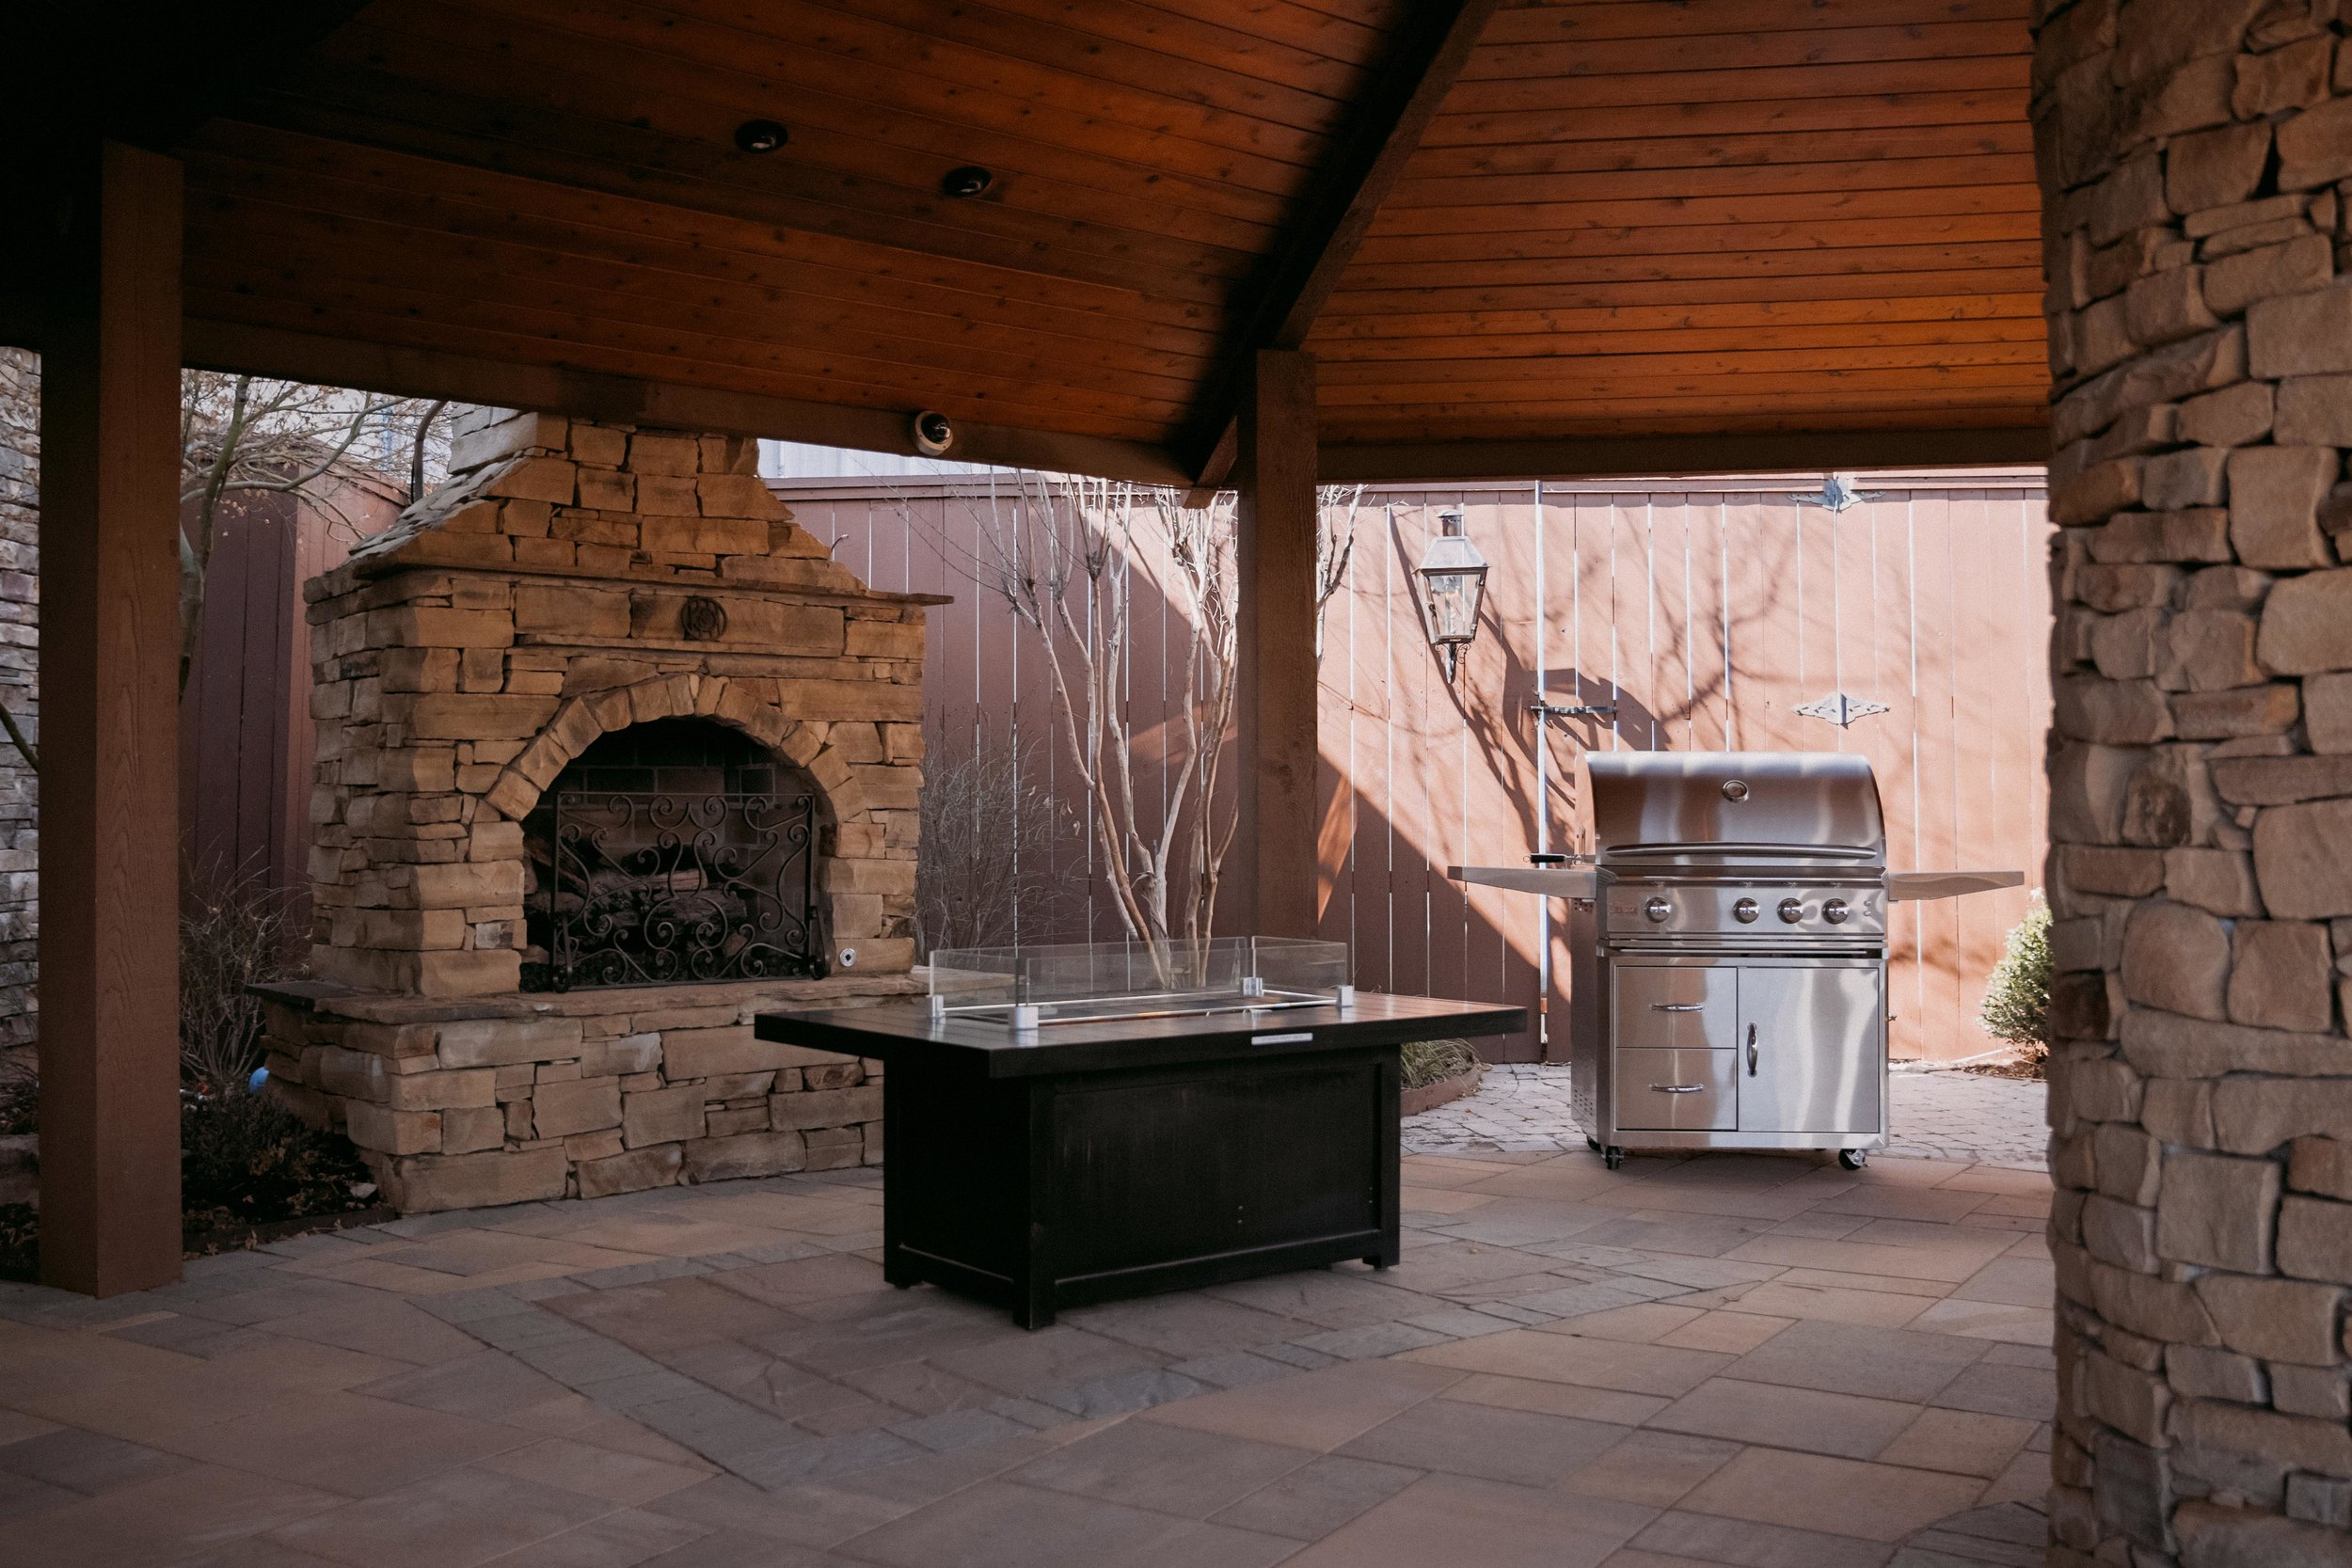 natural gas , propane grills, charcoal,wood grills,smokers, propane, grill,barbecue, BBQ, food, cook, eat, outdoor cooking, smoker, america, USA, united states of america, cooking equipment, oklahoma city, oklahoma,OK, fire, links, steak, picnic, eat, beef